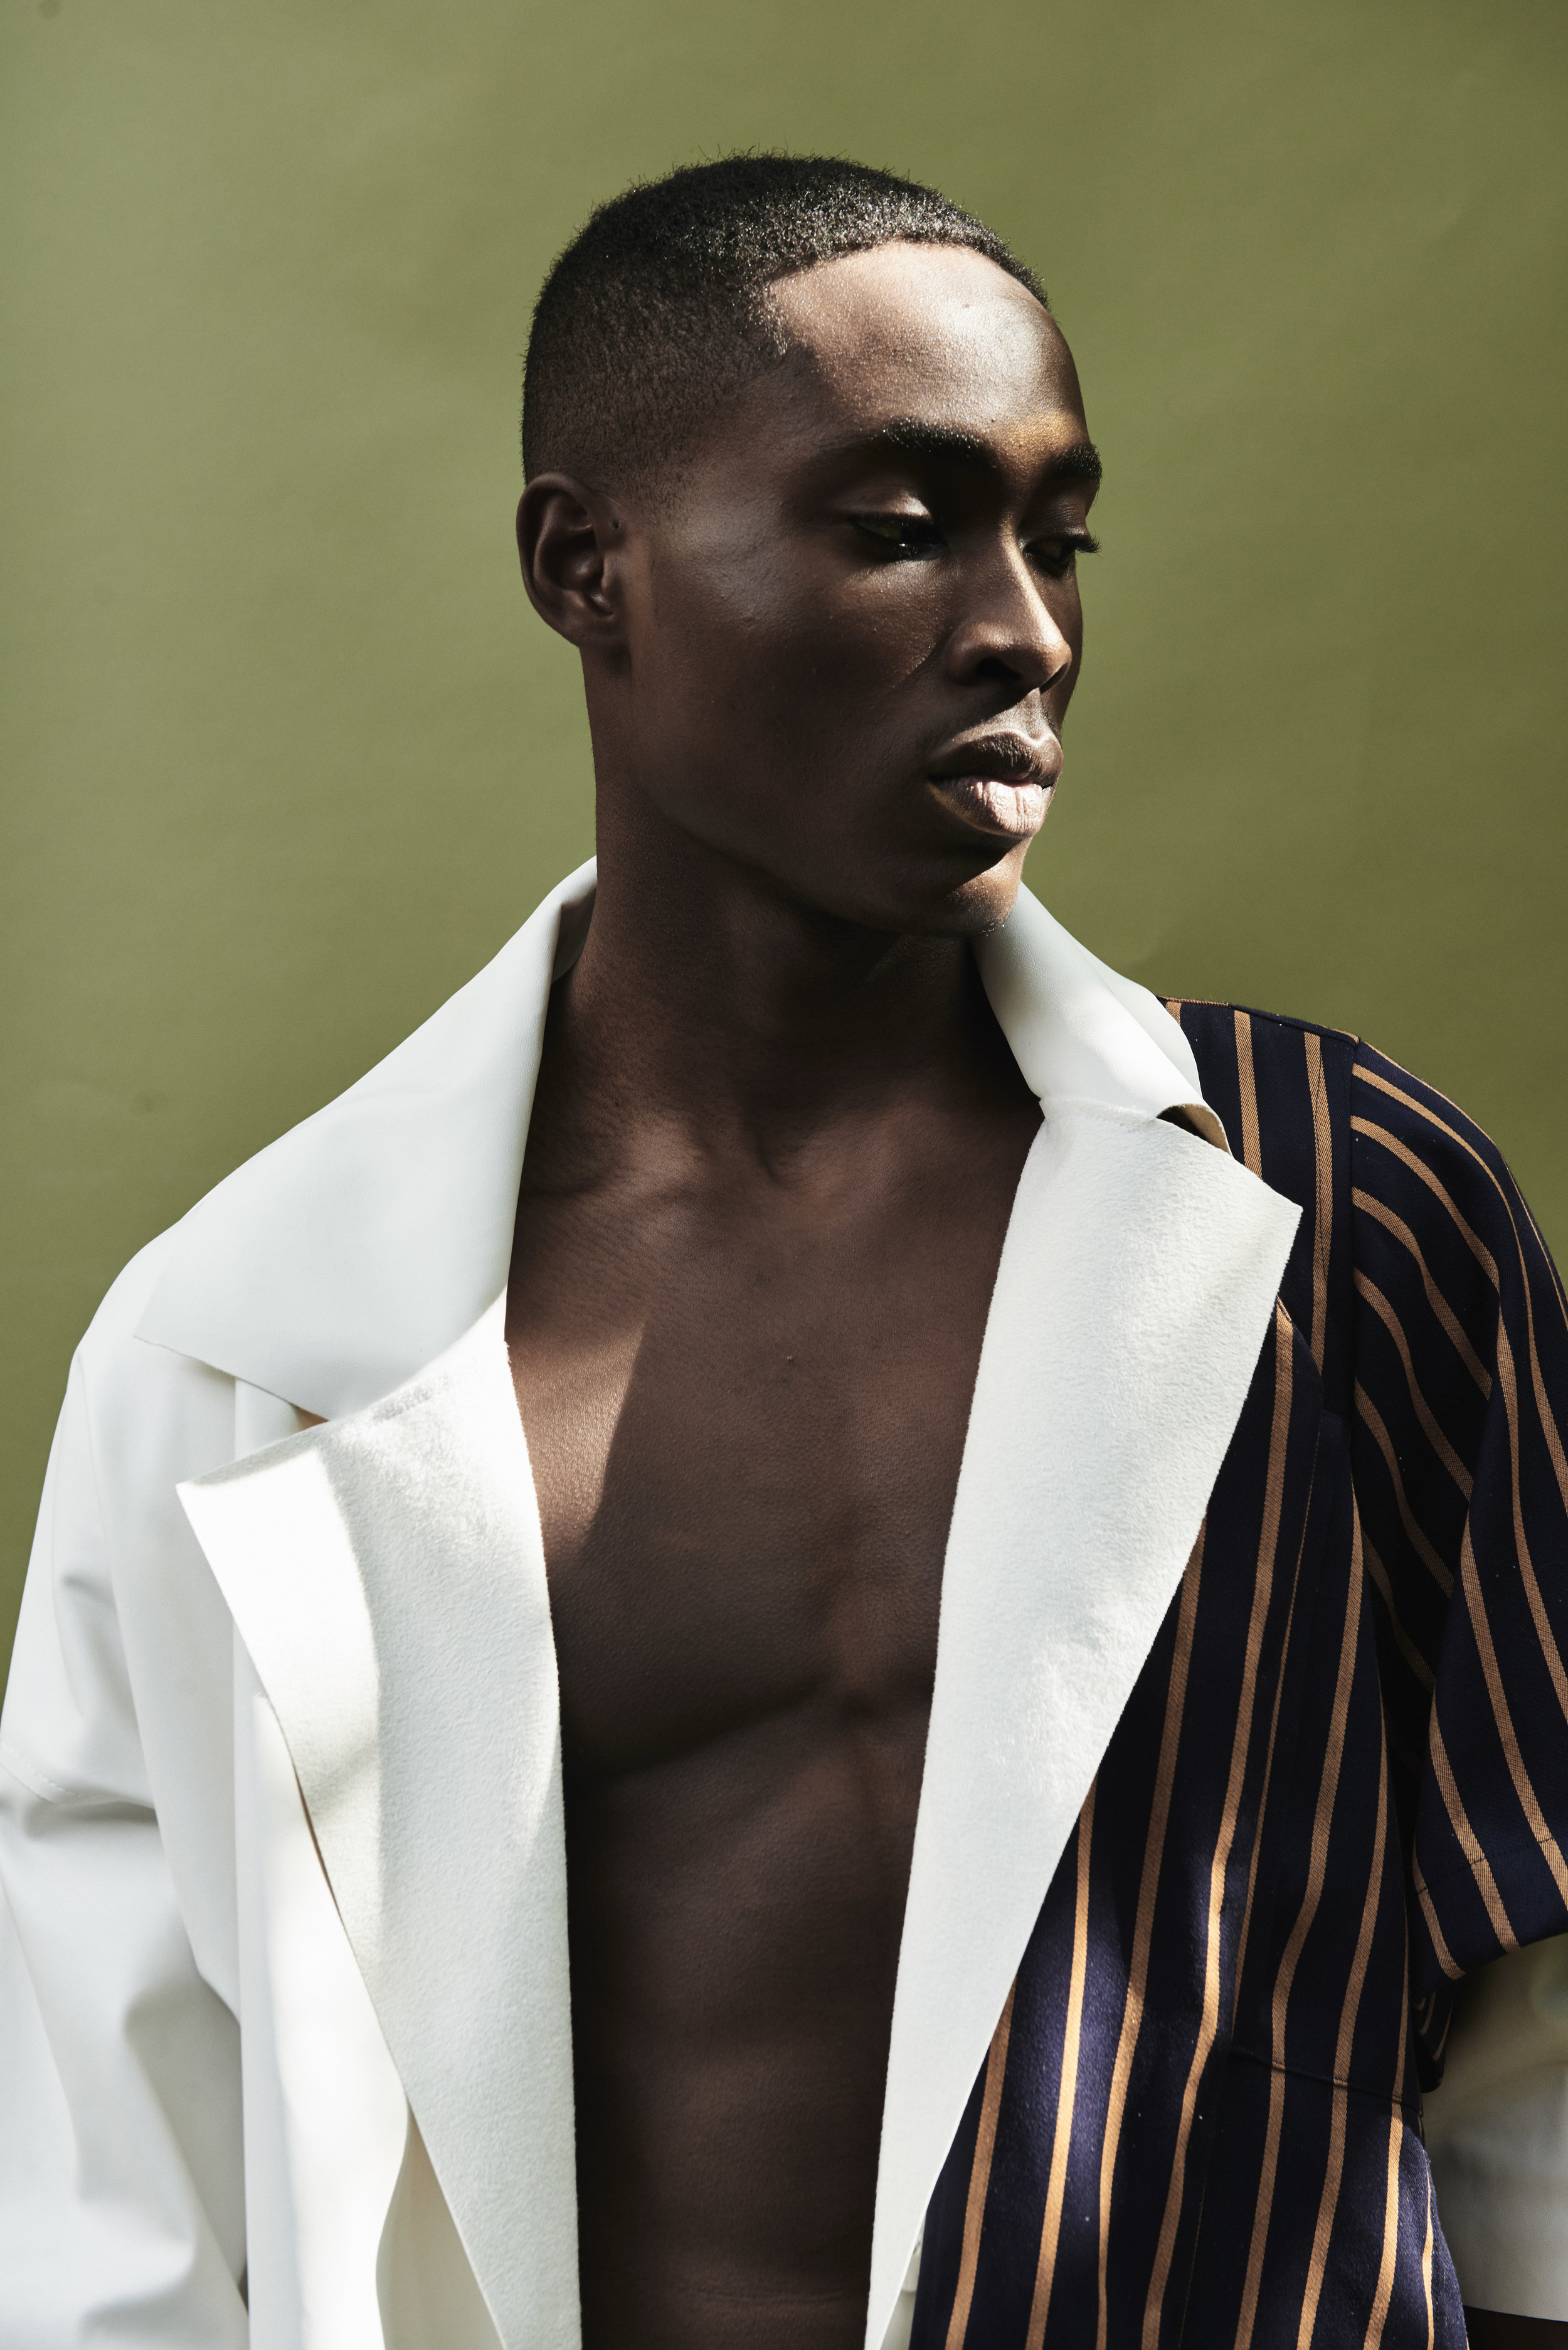 Photography: Timothy Smith -Styling: Paix Robinson - Grooming: Jake Aebly - Model: Jide Alao